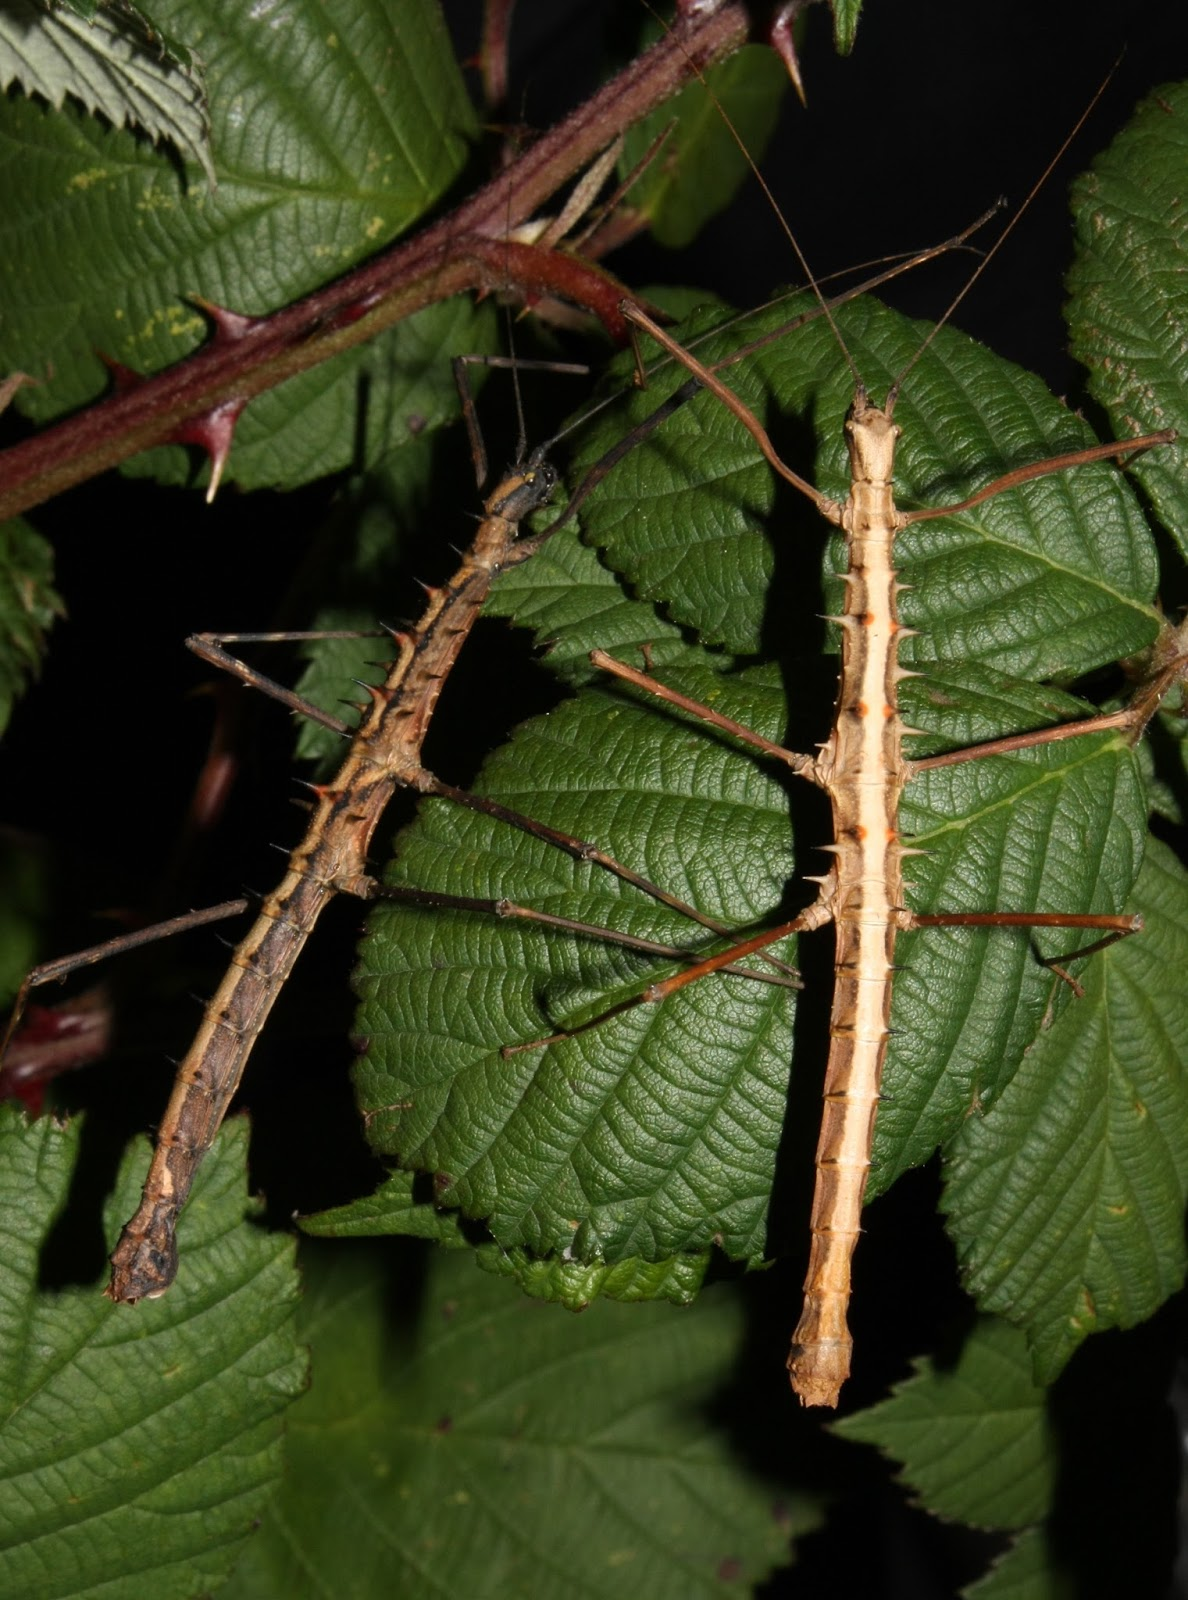 Stick insects disguised as a twigs